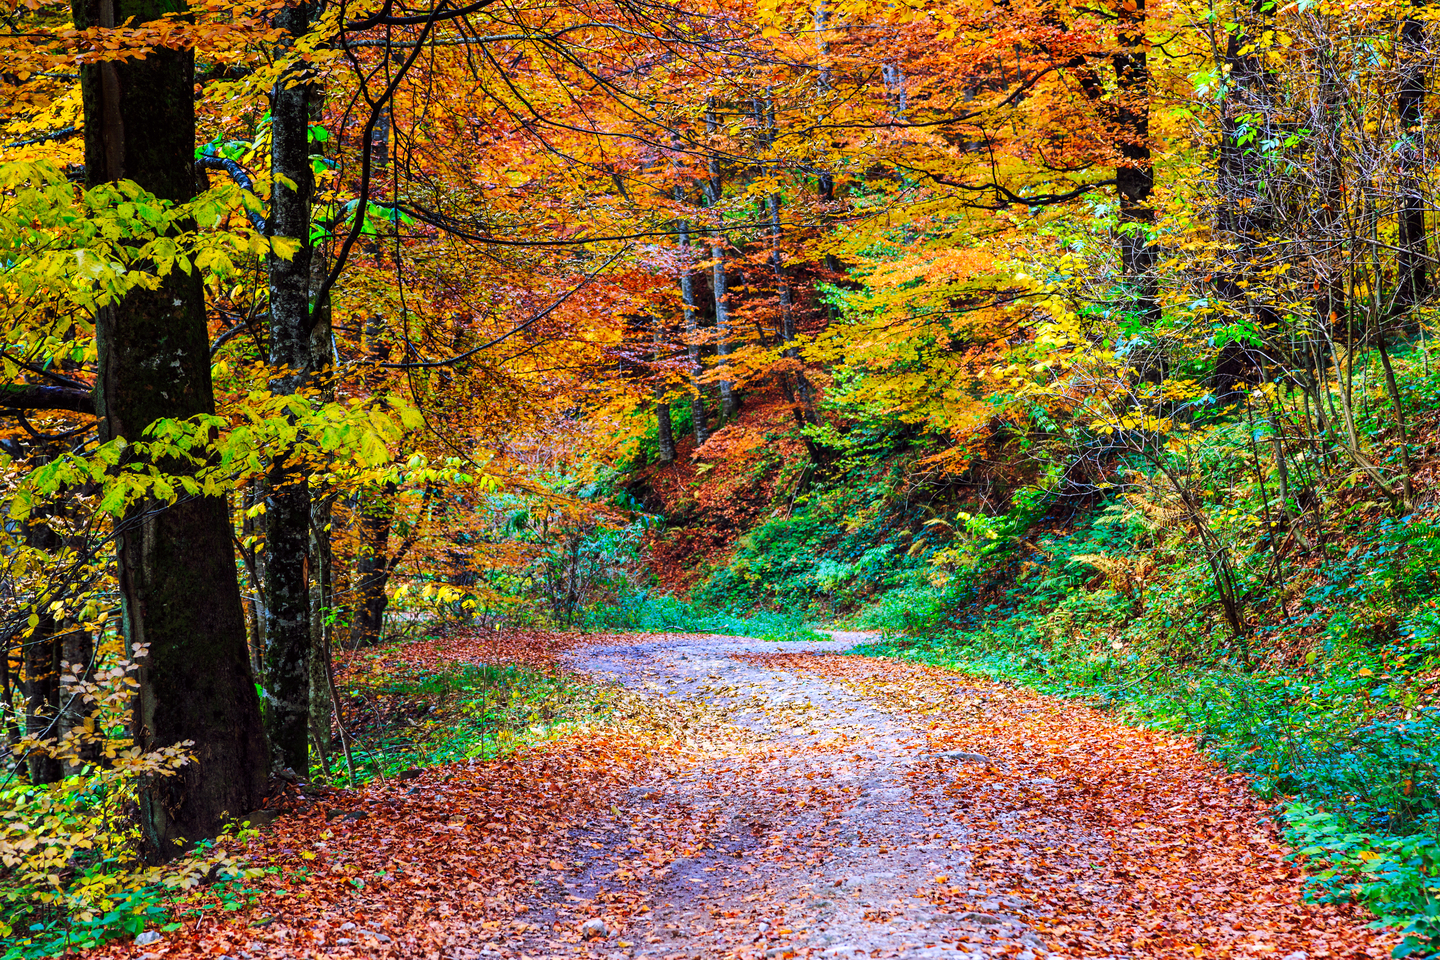 Footpath winding through the colorful fall forest